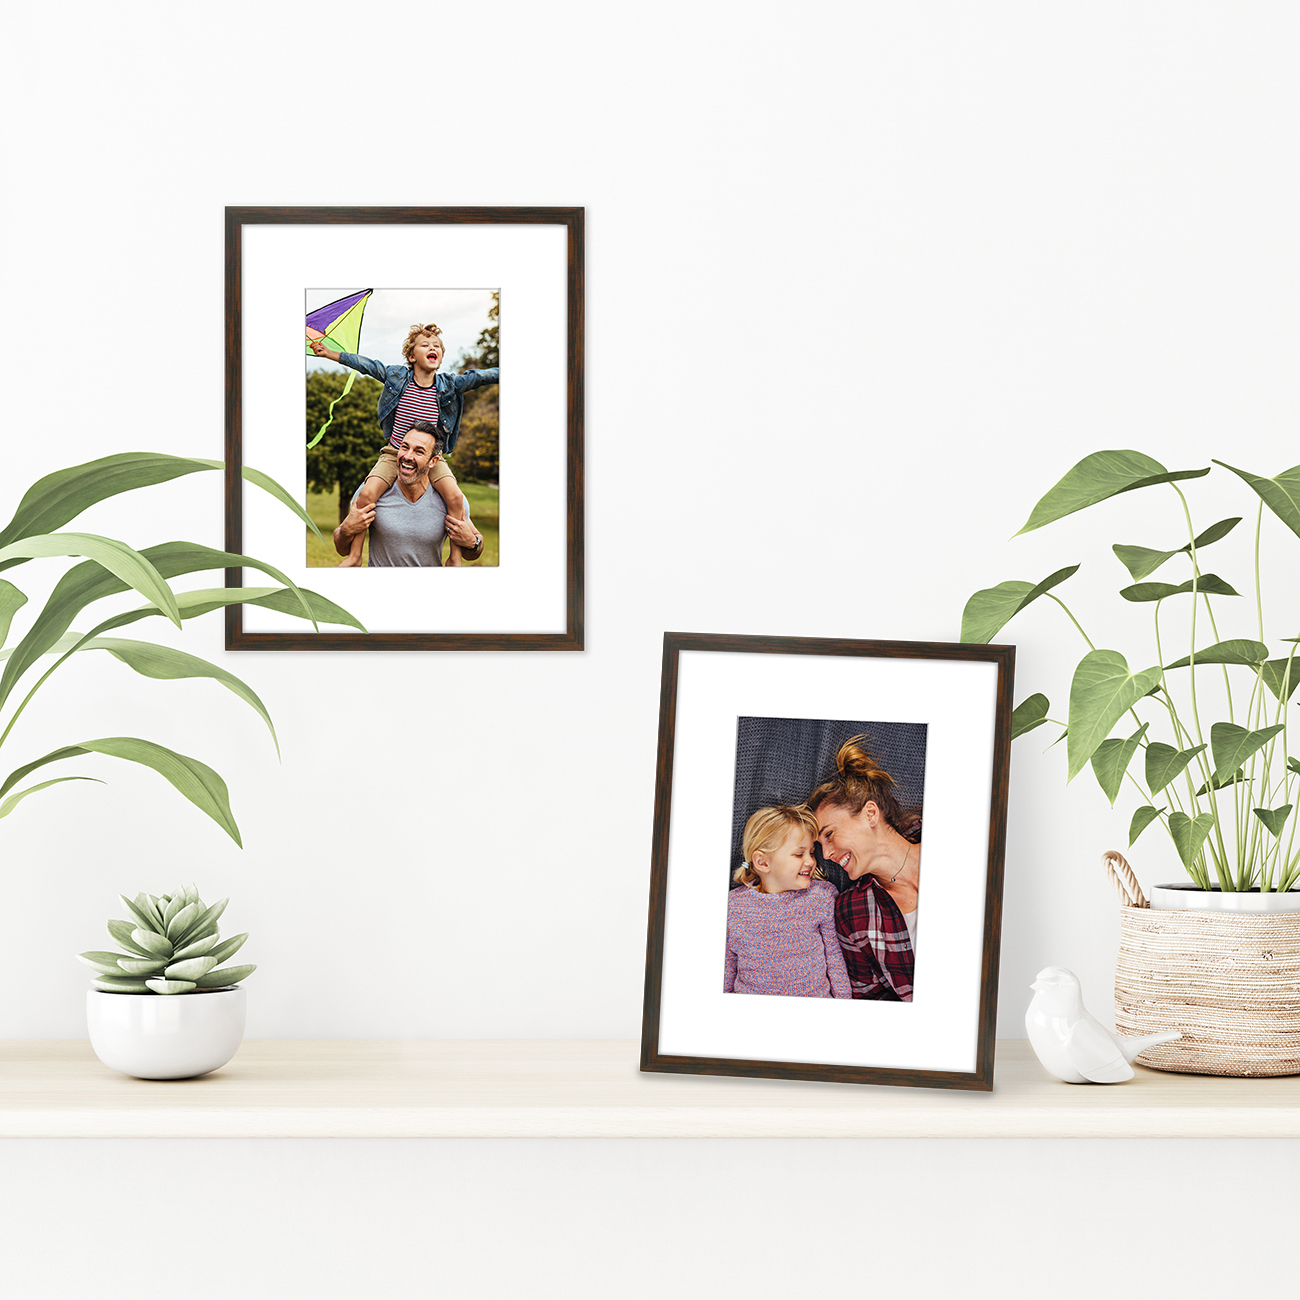 miniature 61 - Americanflat Thin Picture Frame 5x7 8x10 11x14 8.5x11 Wall Tabletop Pick Color